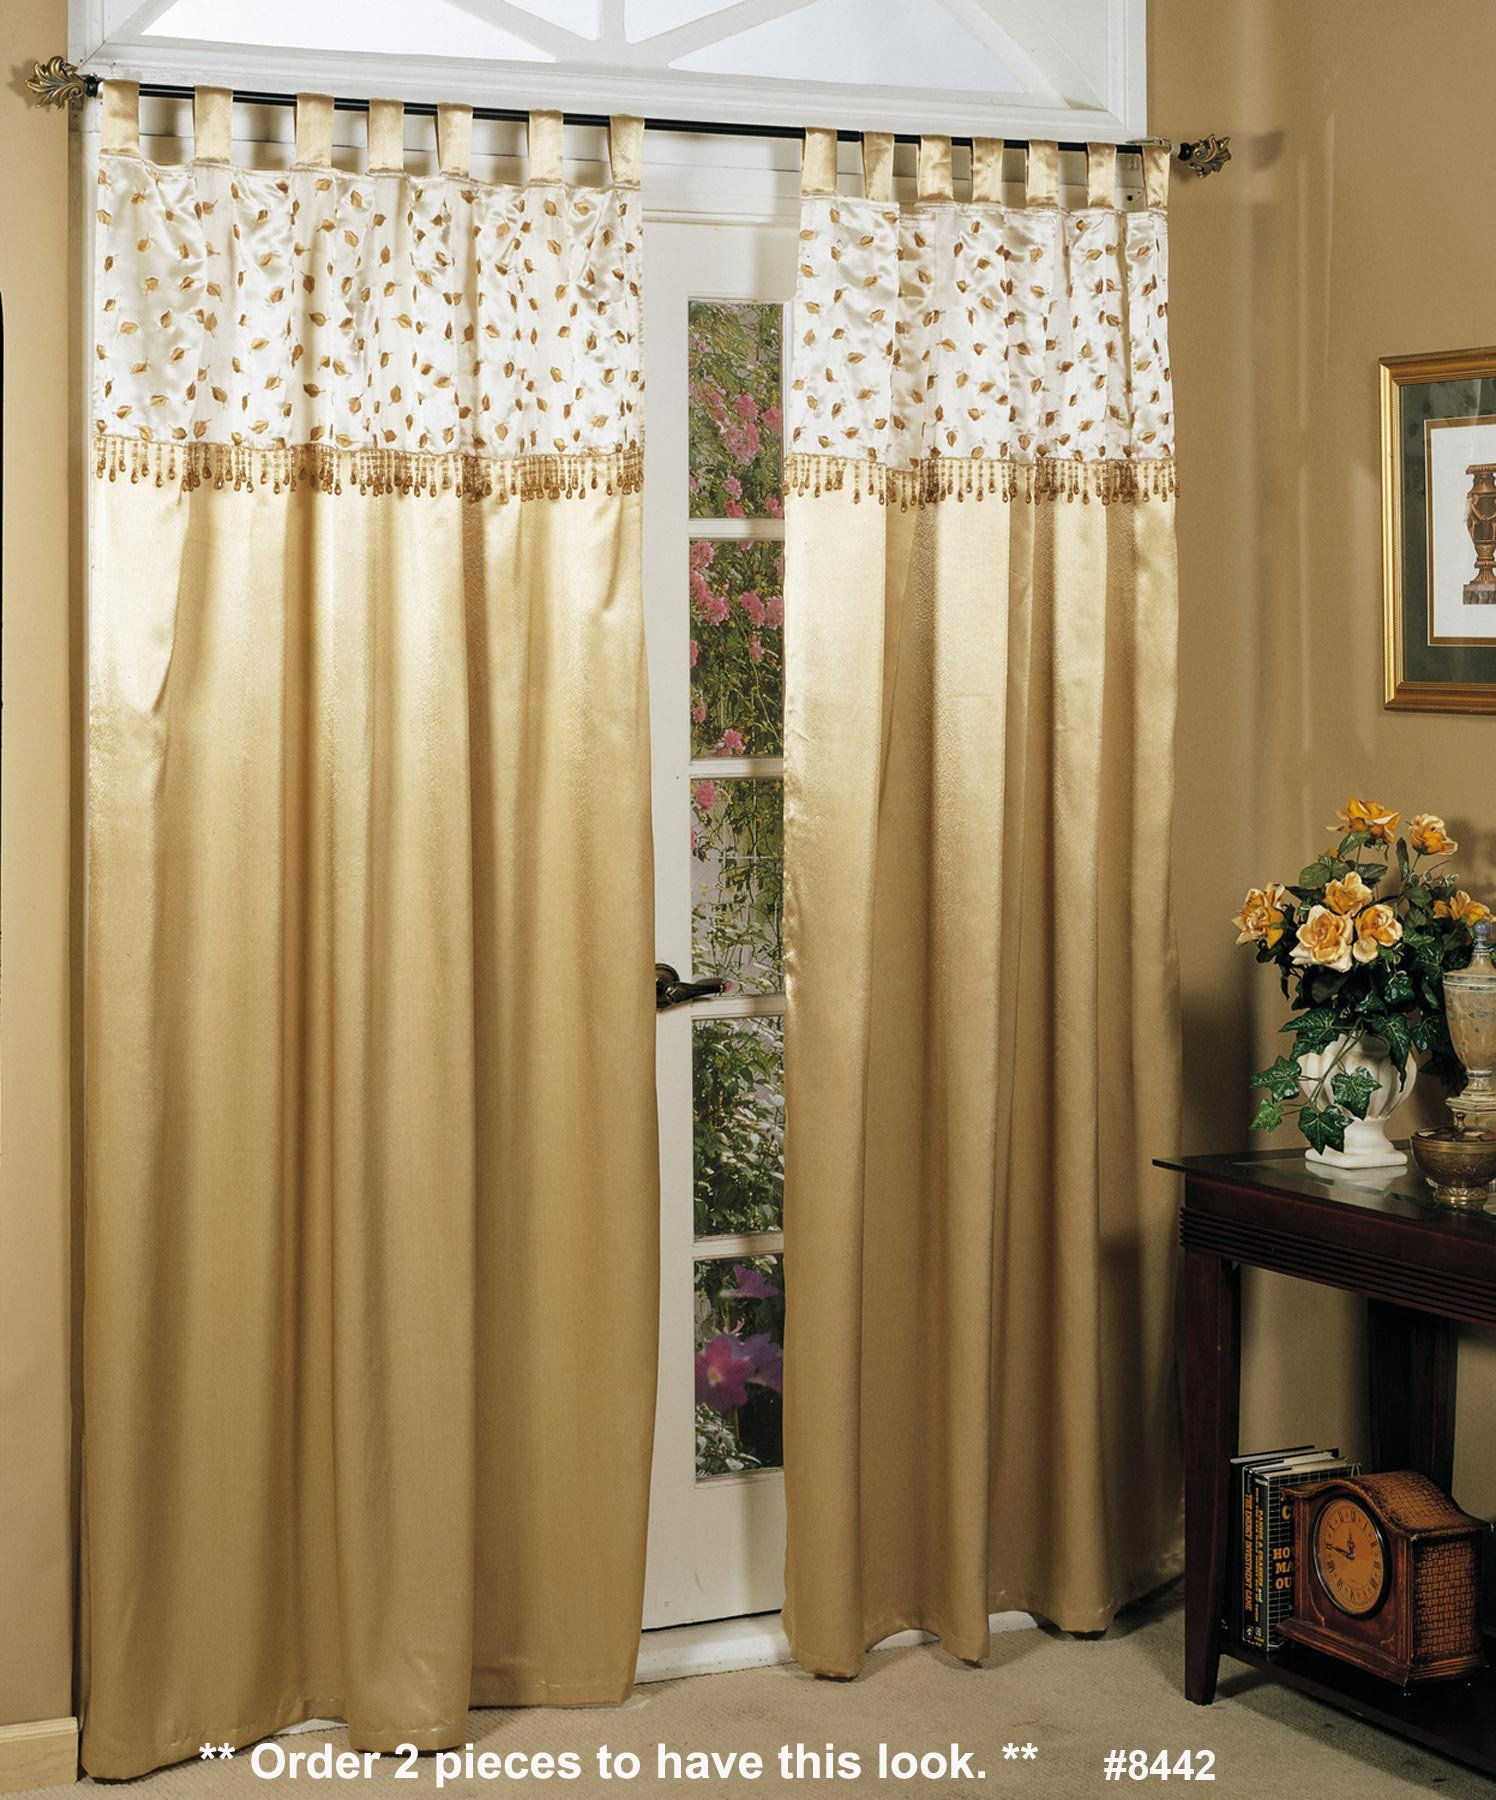 Holiday Fall Autumn Golden Leaf Beaded Window Curtain Panel 56 X